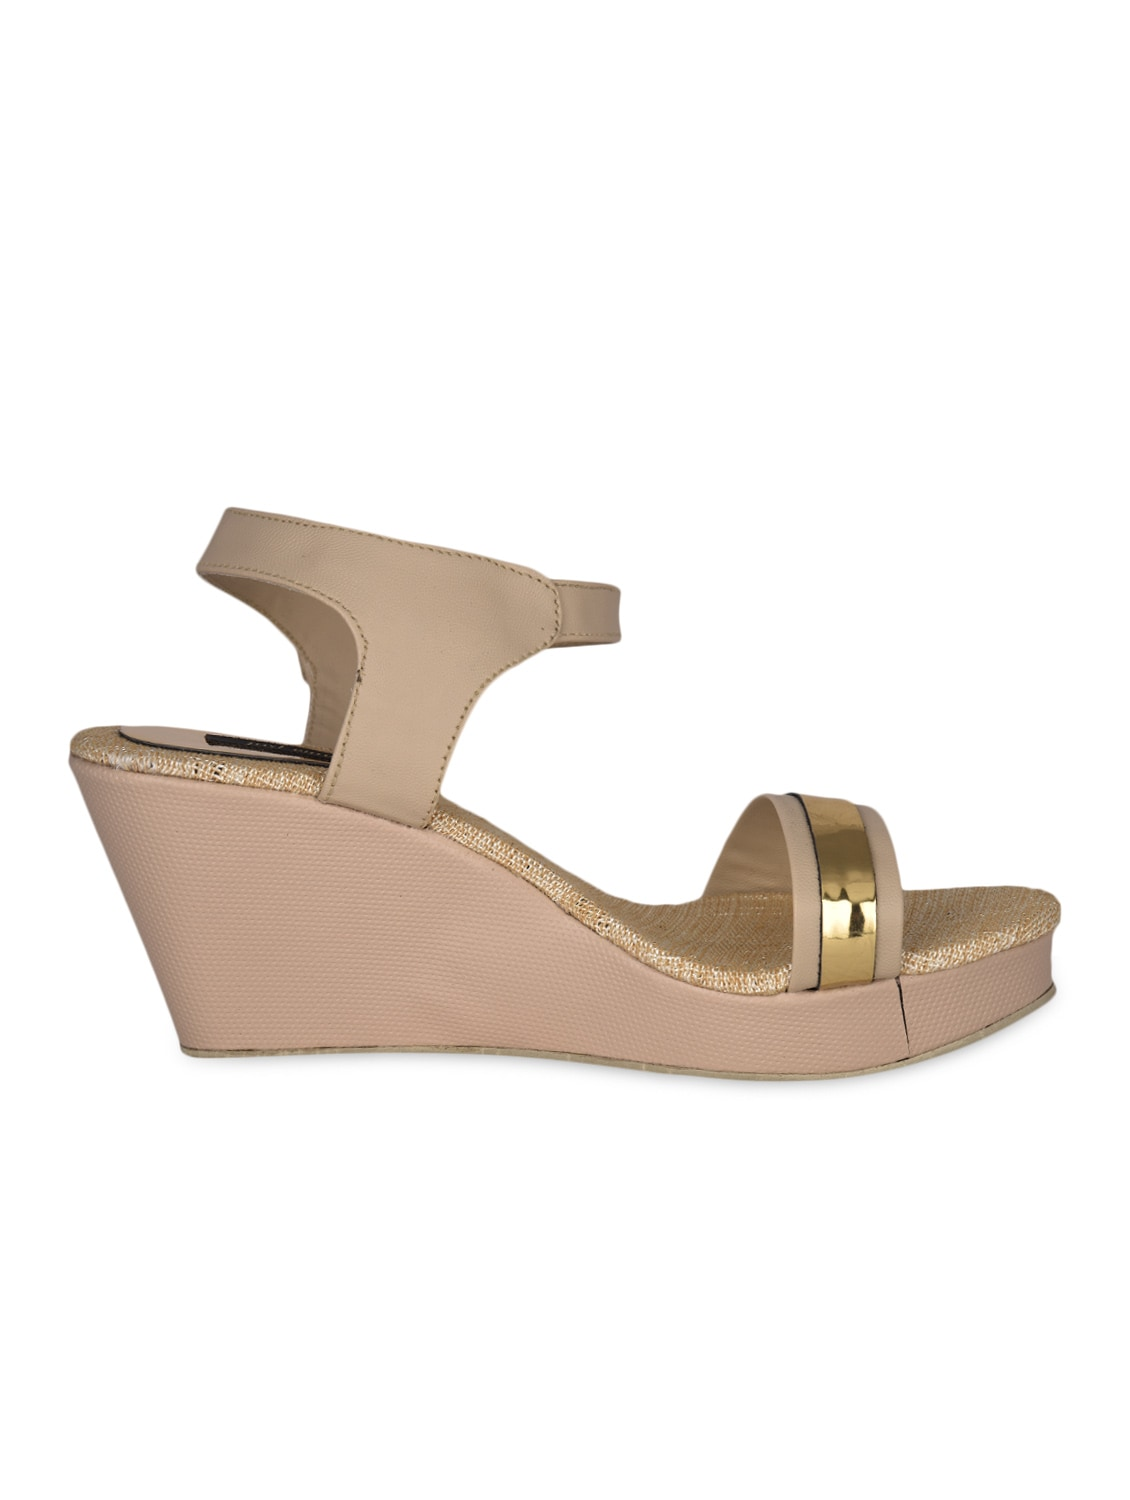 Open Toe Buckle Closure Wedges - Just Wwow